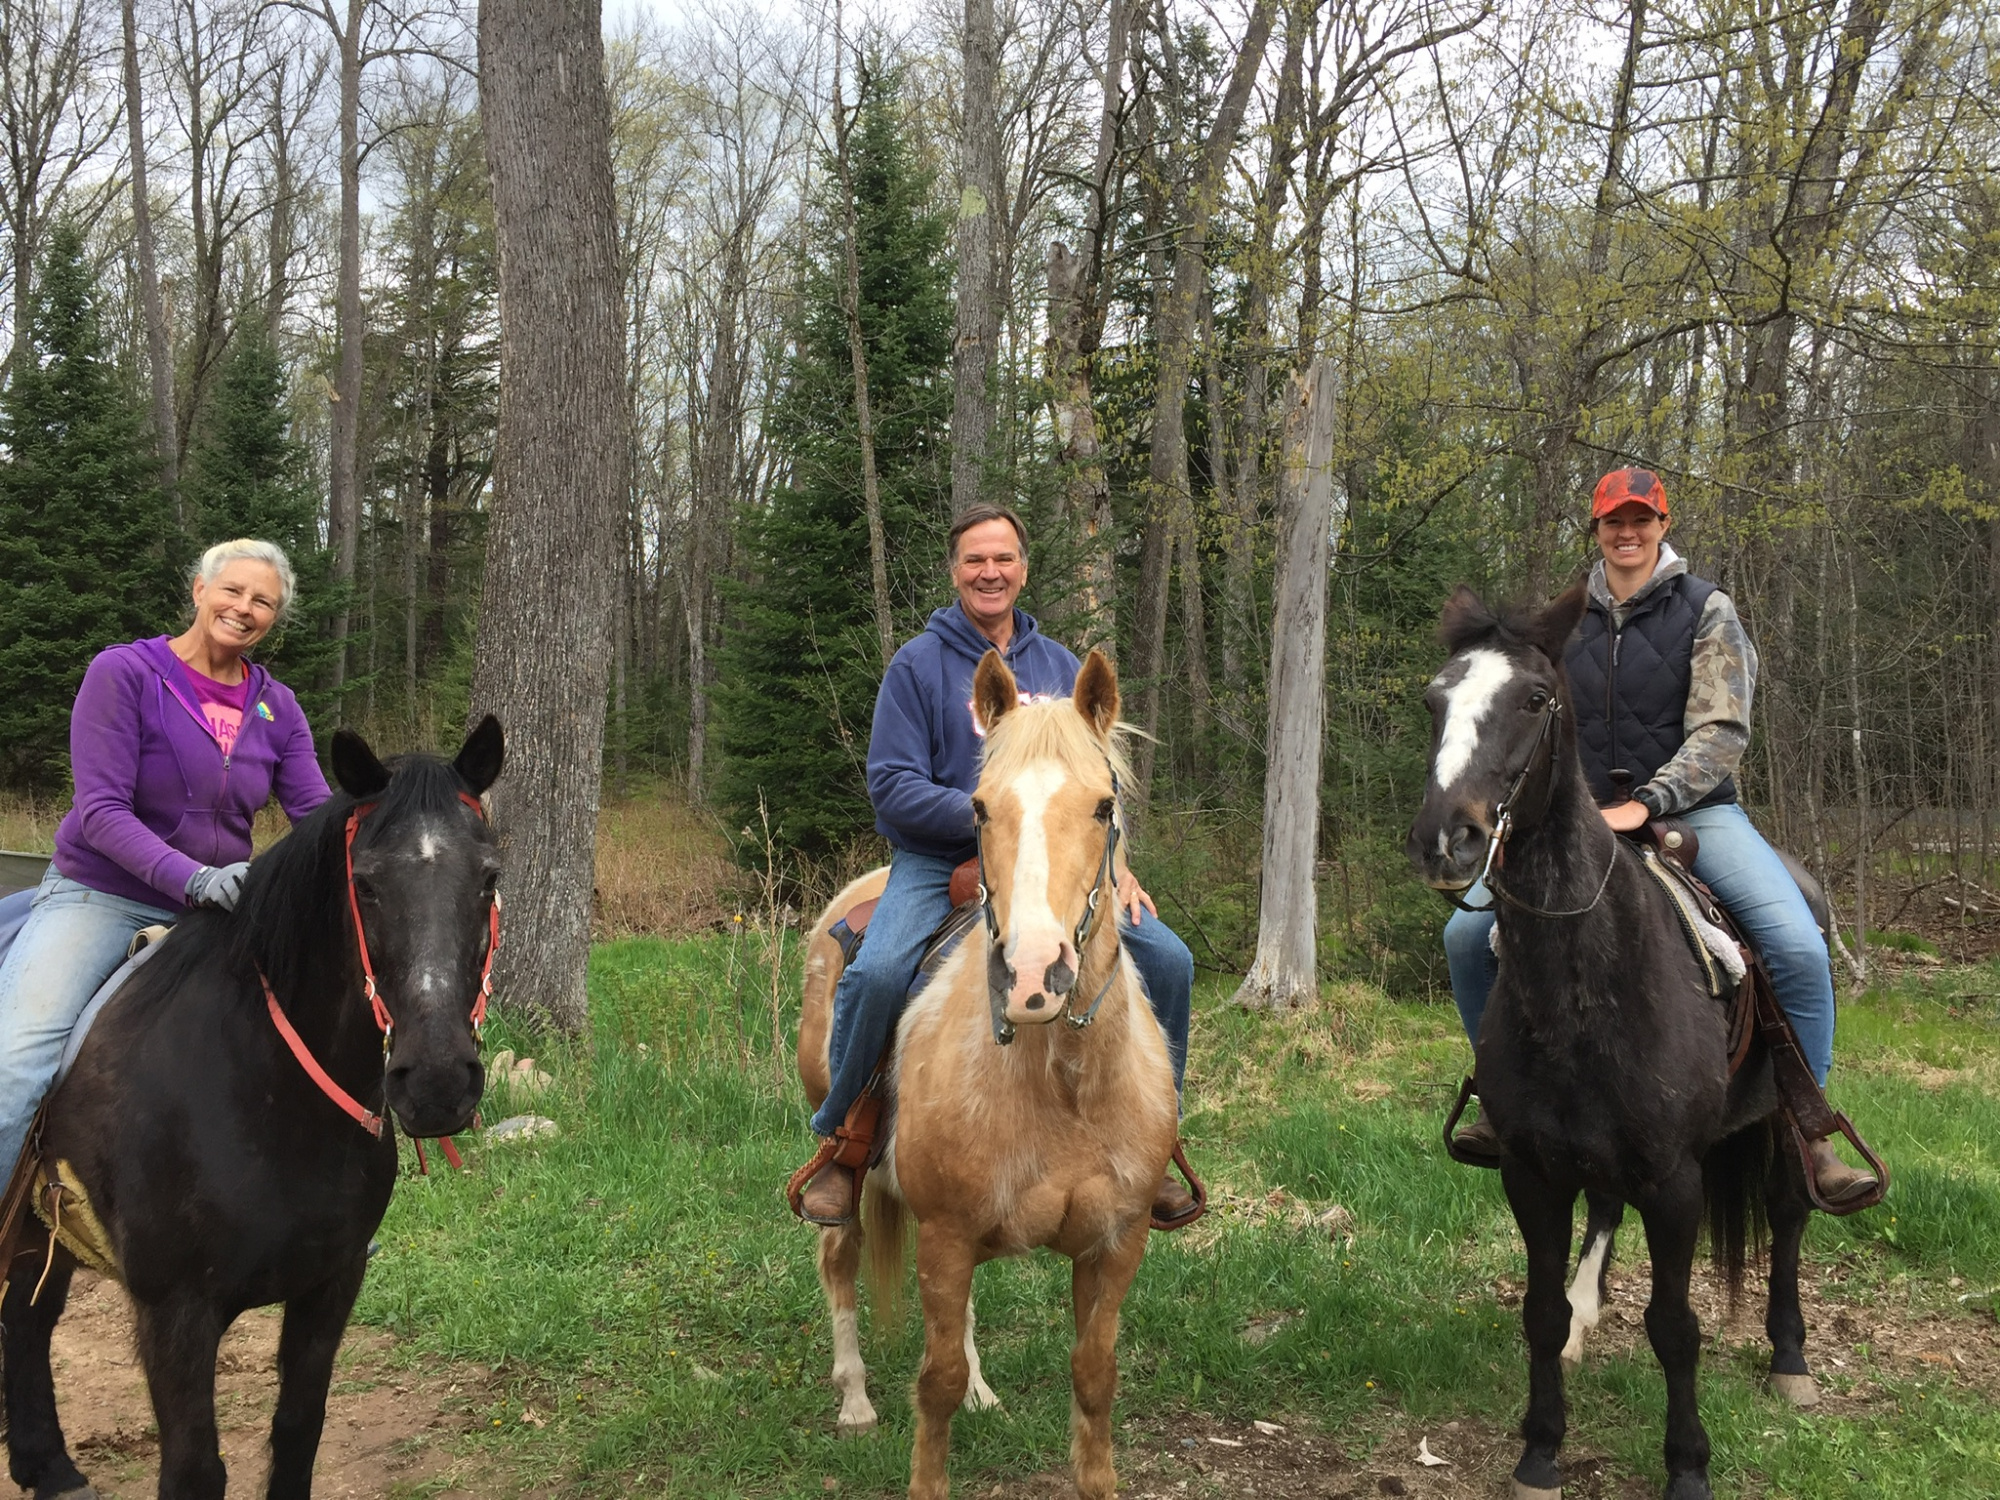 Horseback riding and exploring the BlackJack Wilderness on his horse Cheeko